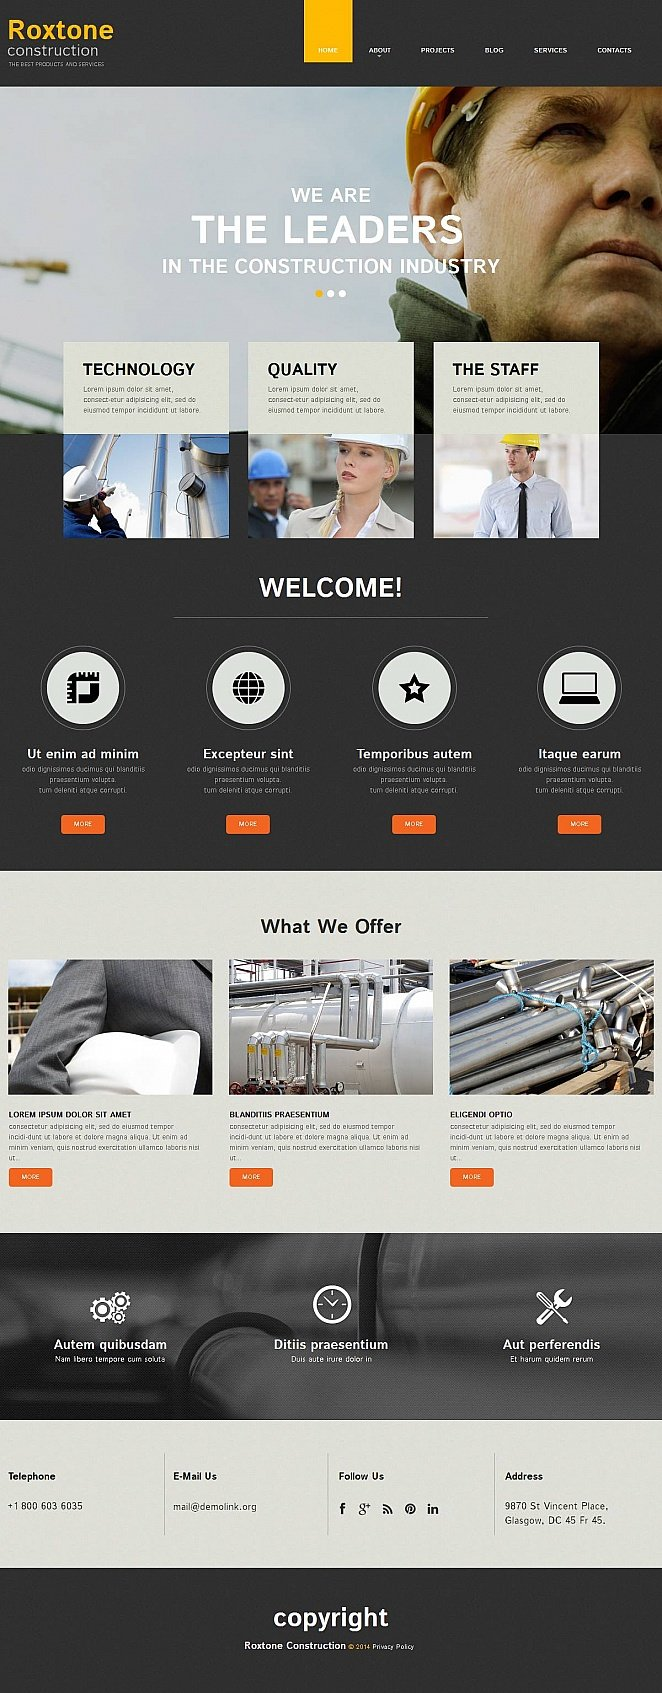 Construction Services Website Template with CMS - image